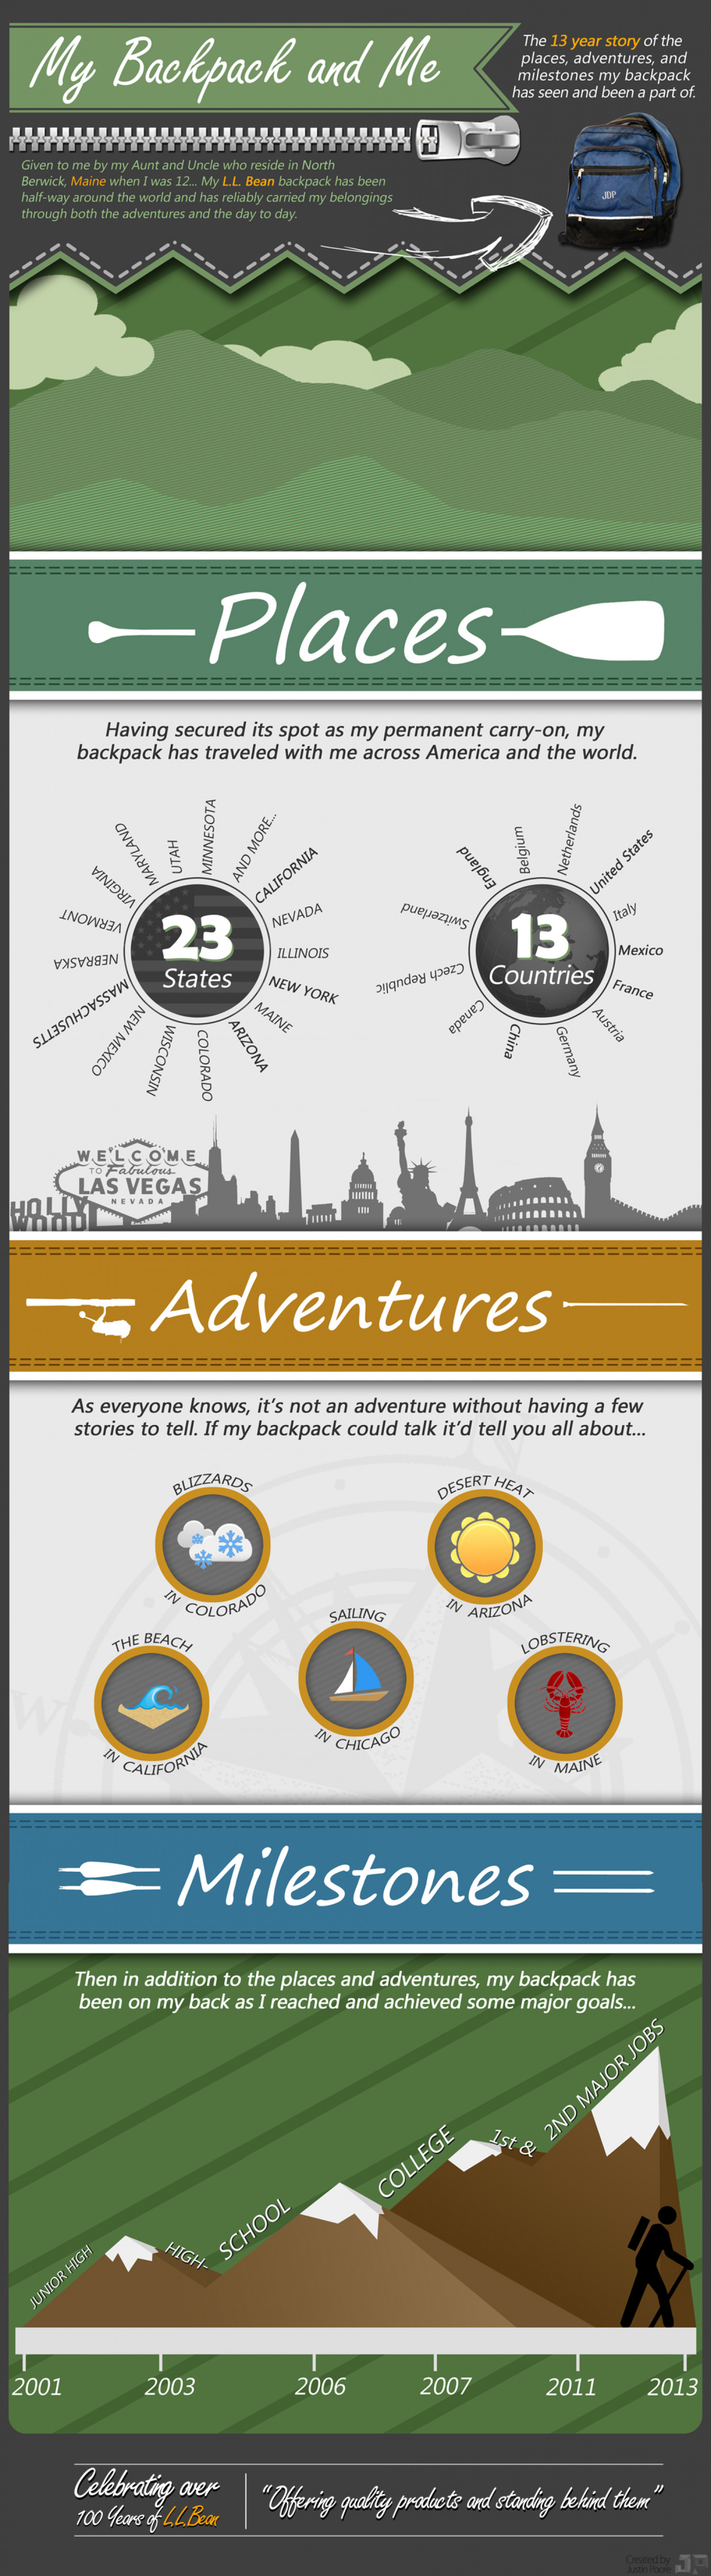 My Backpack & Me Infographic